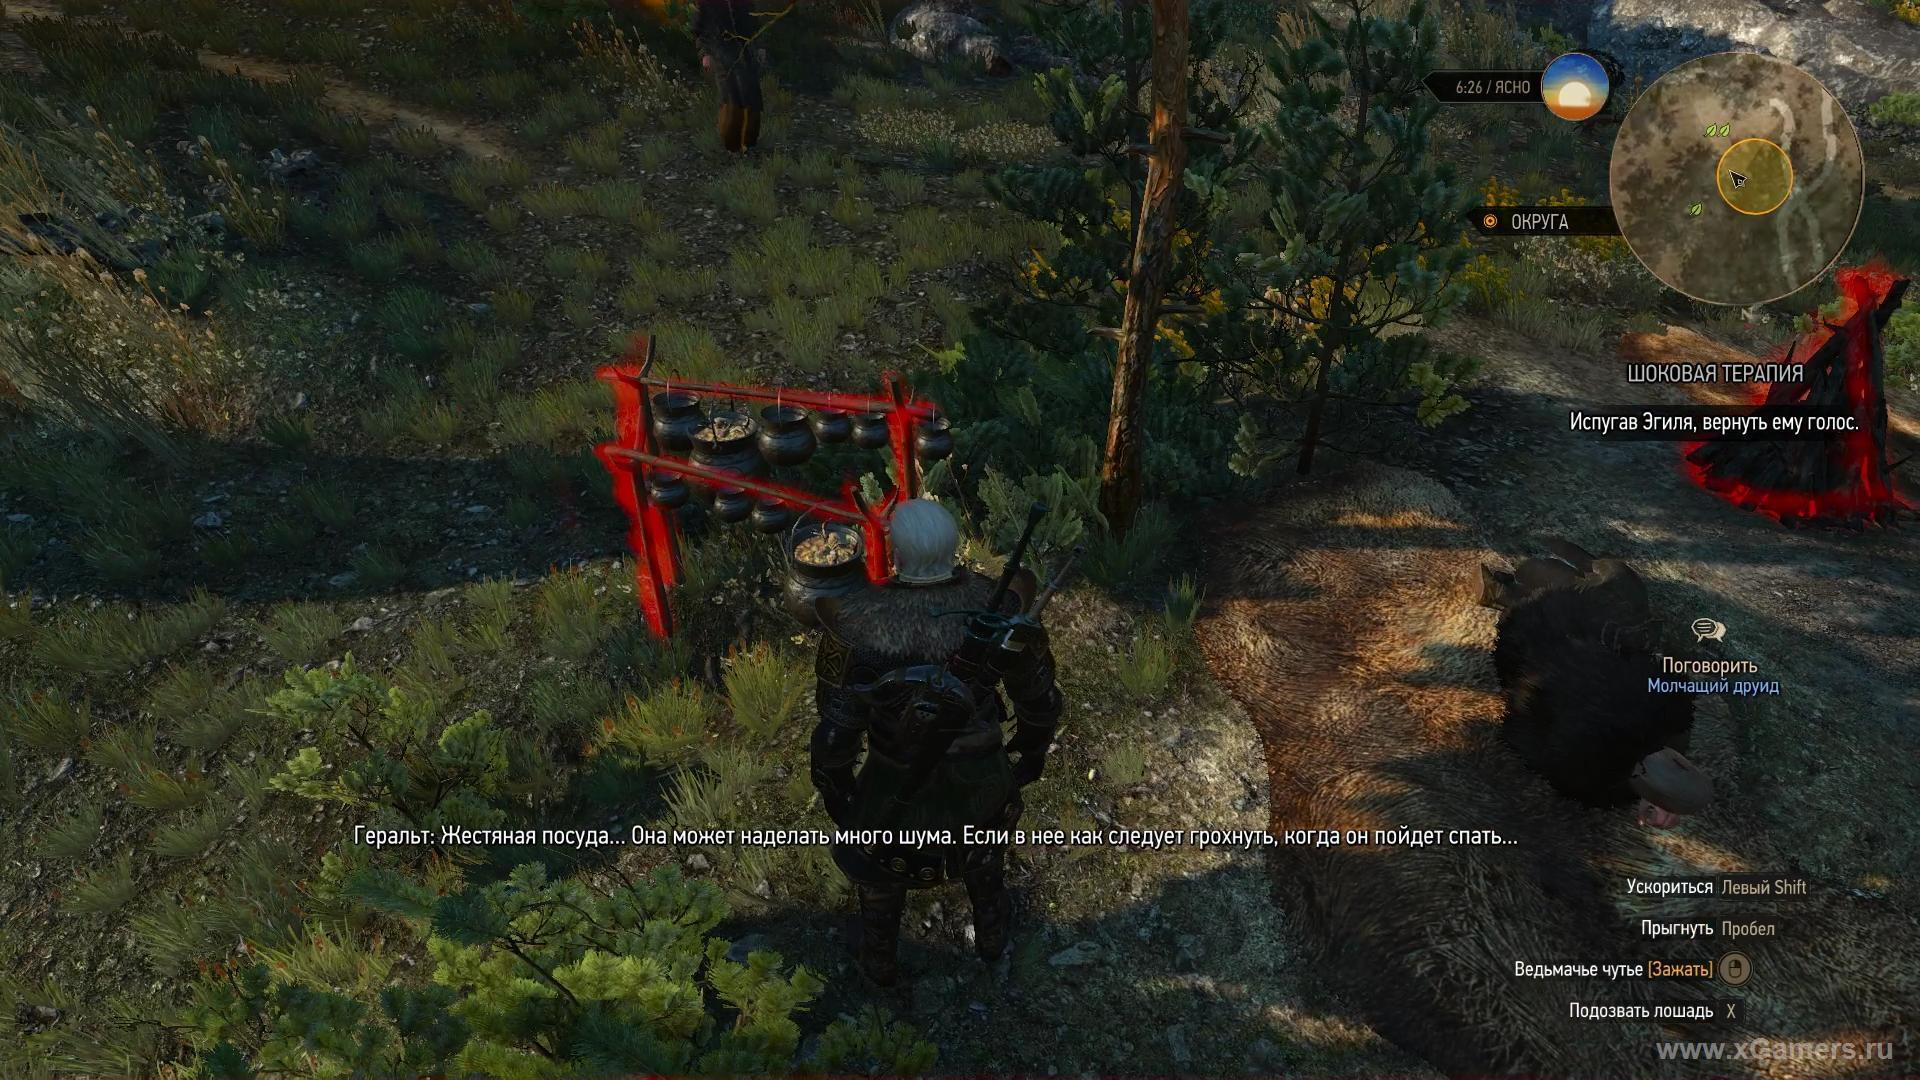 Shock Therapy The Witcher 3 - walkthrough quest